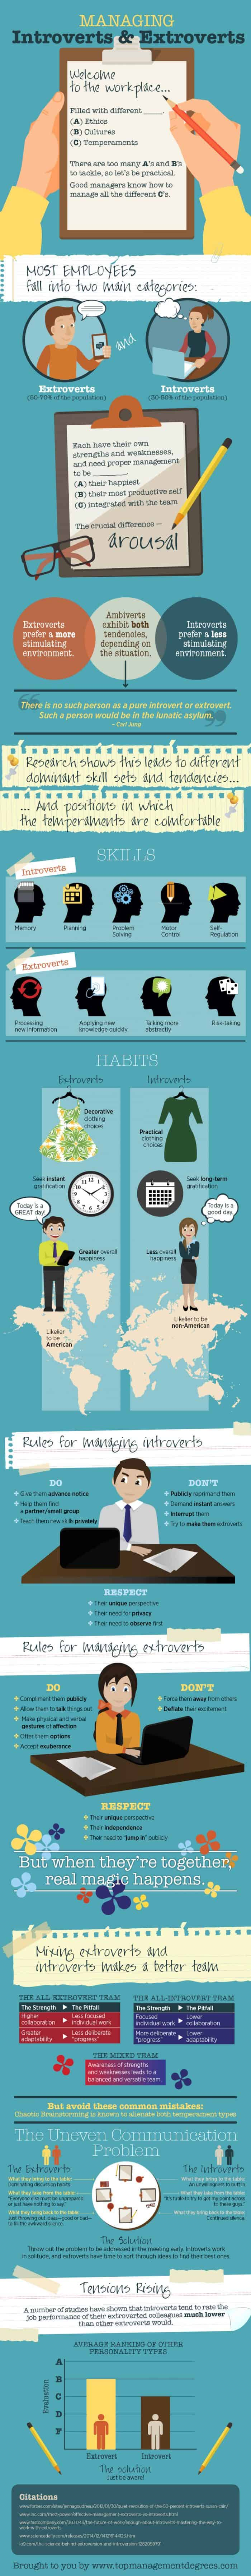 Infographic showing the best ways to manage introverts and extroverts.